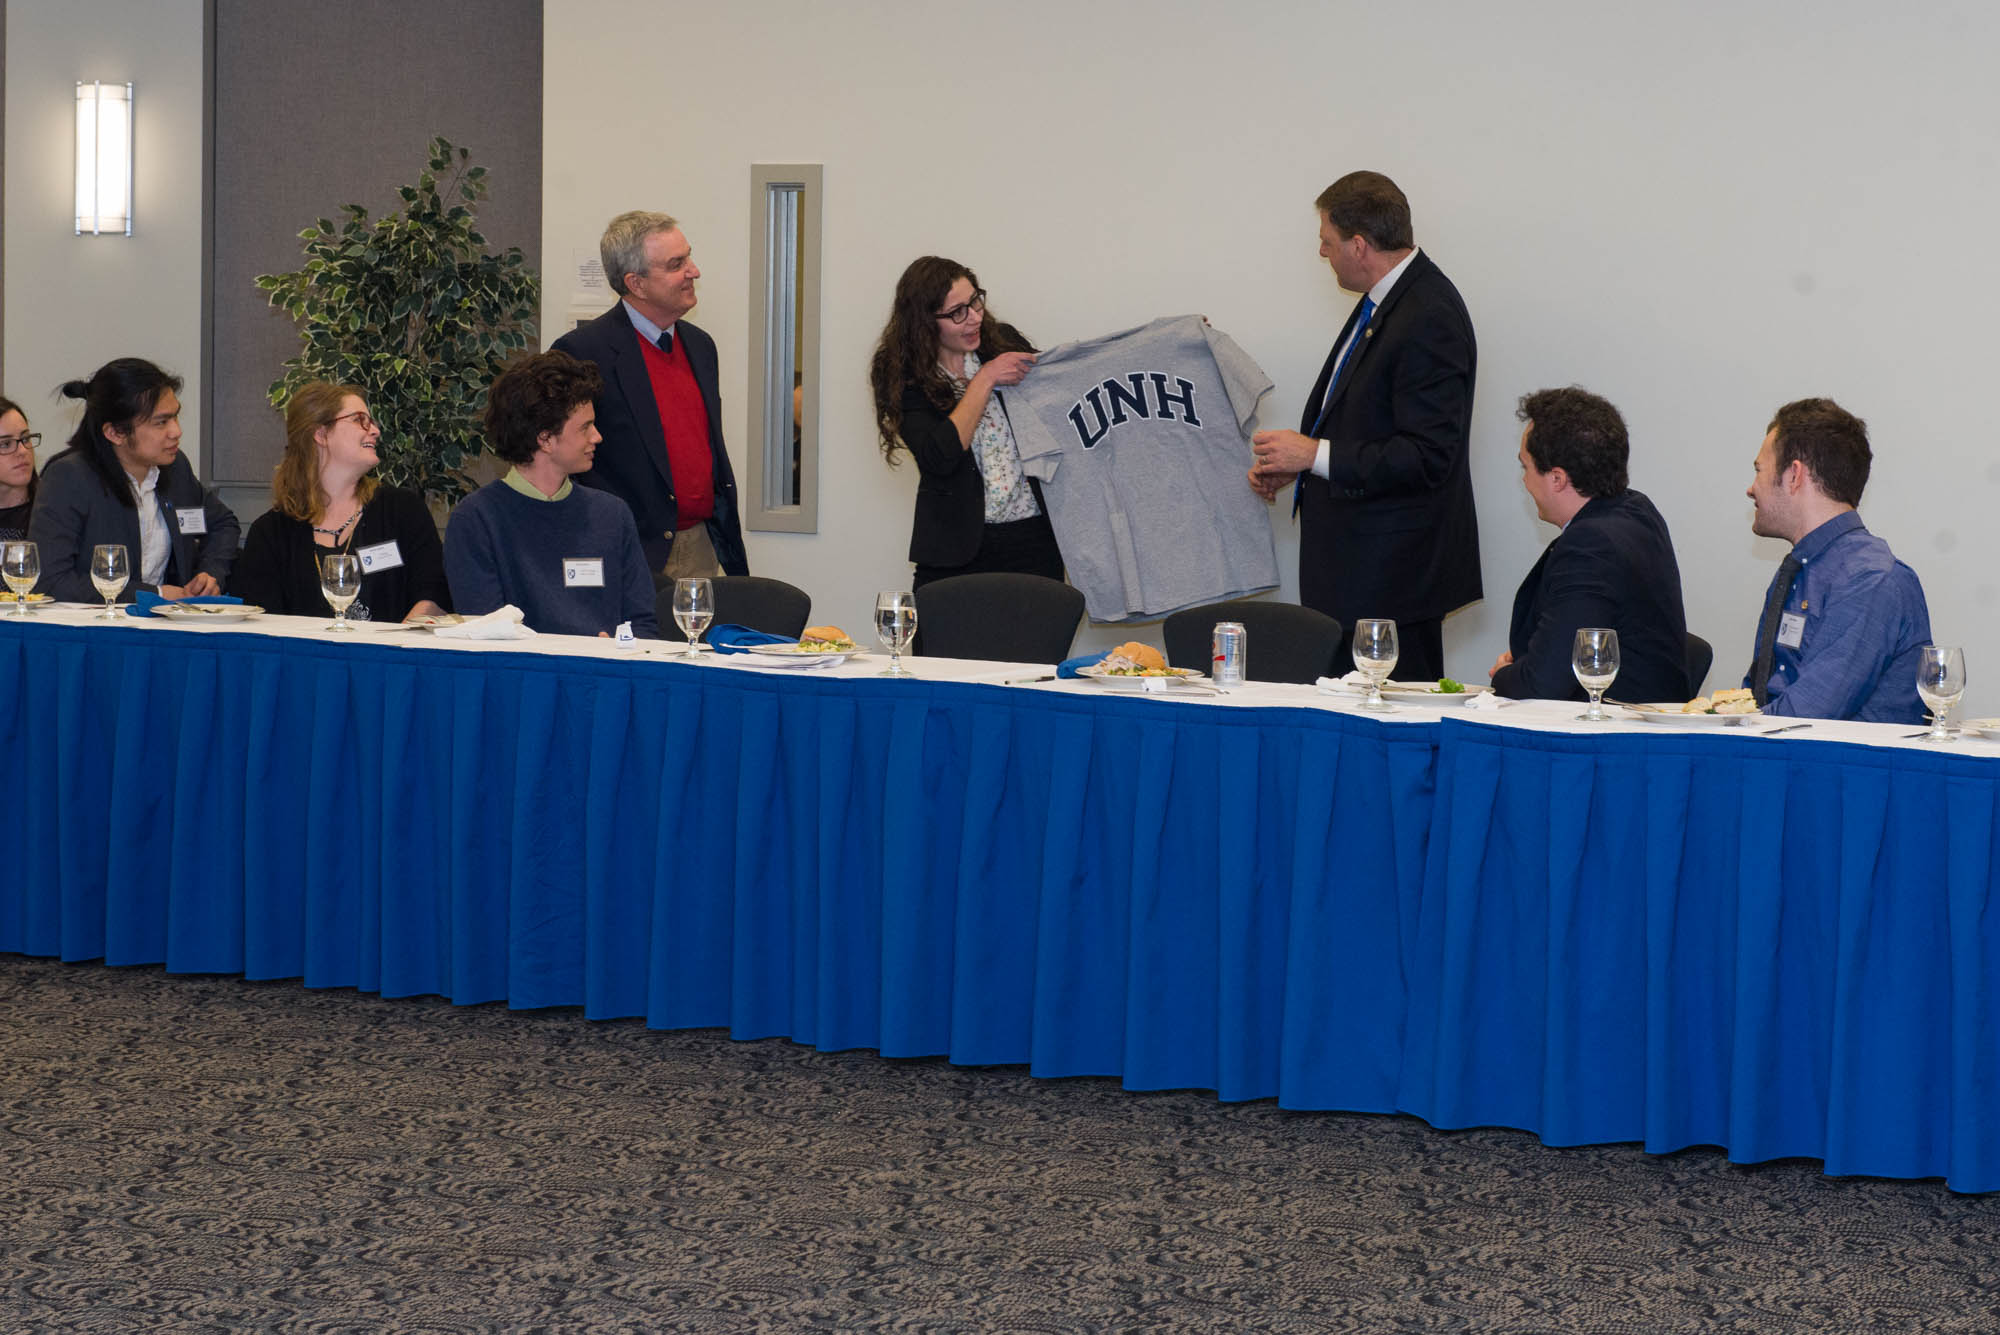 Ashley LeBlanc presents Governor Sununu with a UNH t-shirt